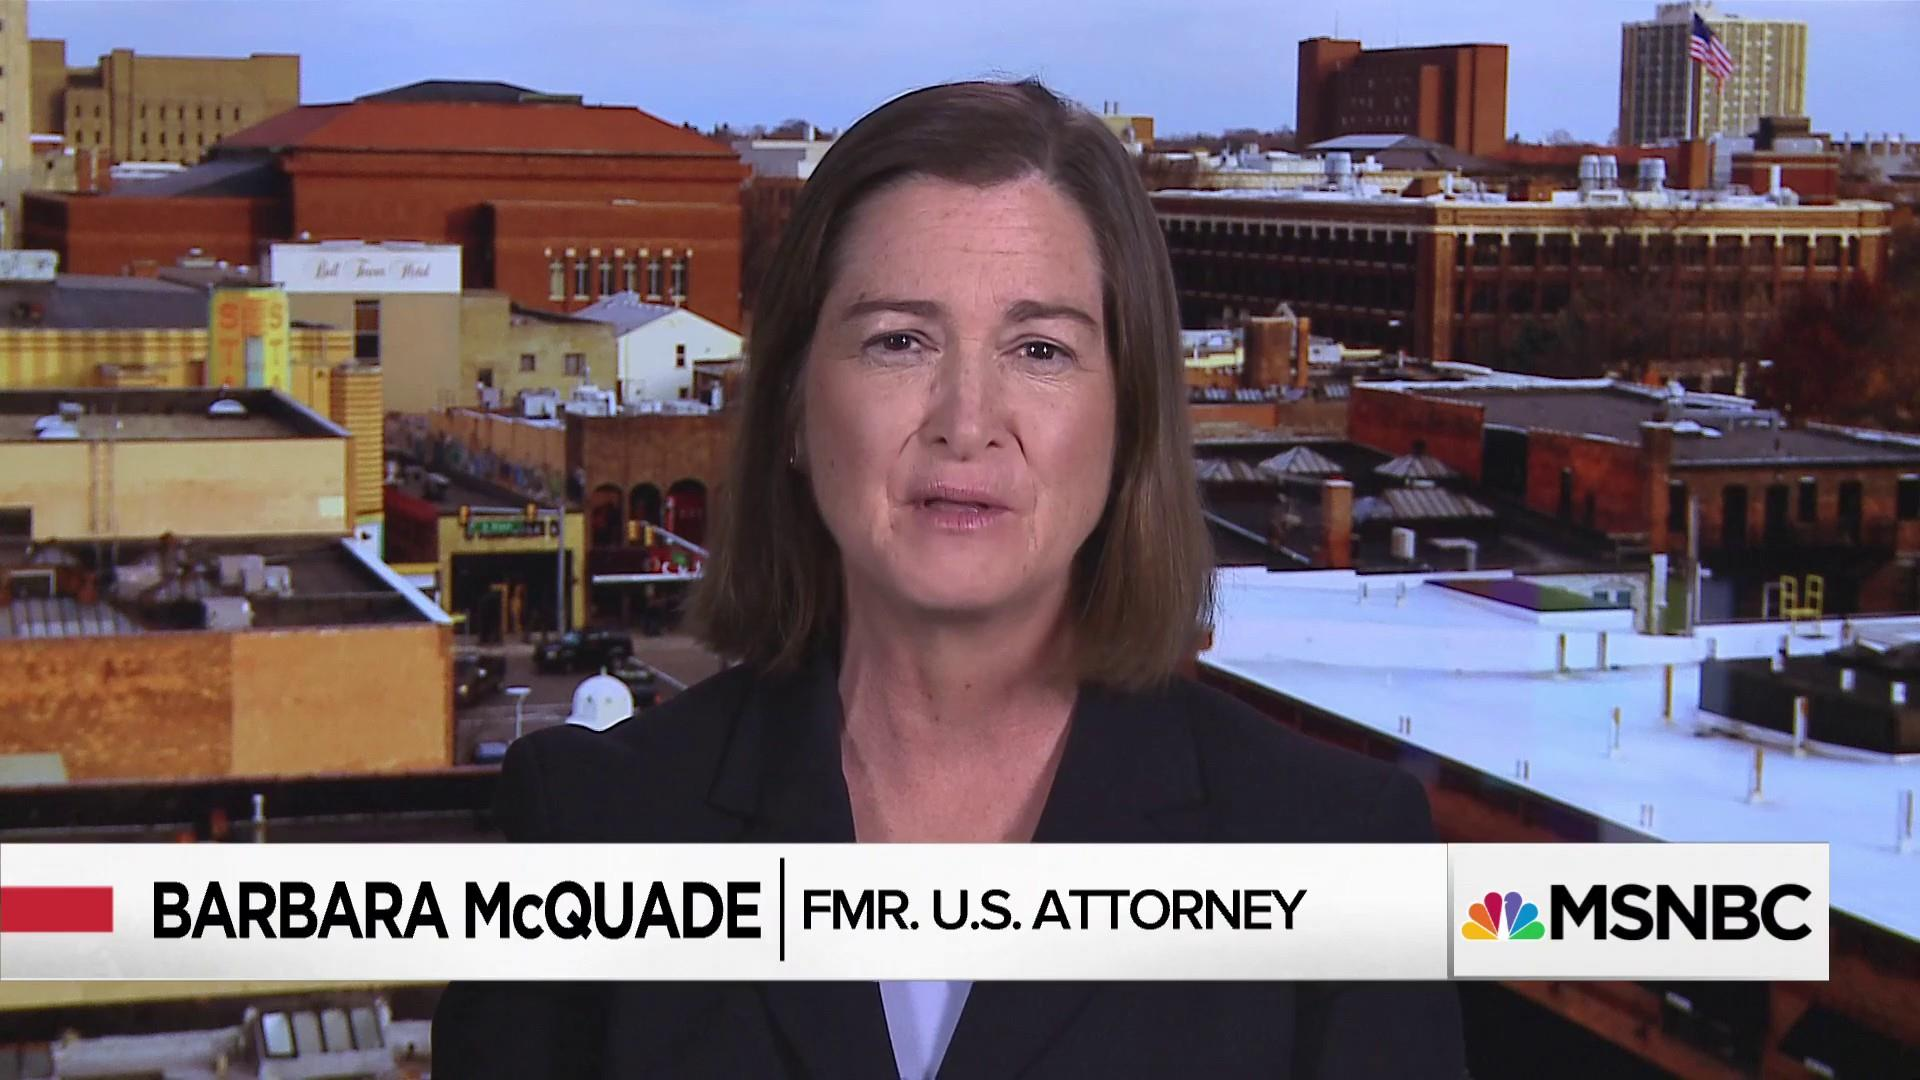 Fmr. U.S. Atty: 'Risk is too high' for attorneys to join ...